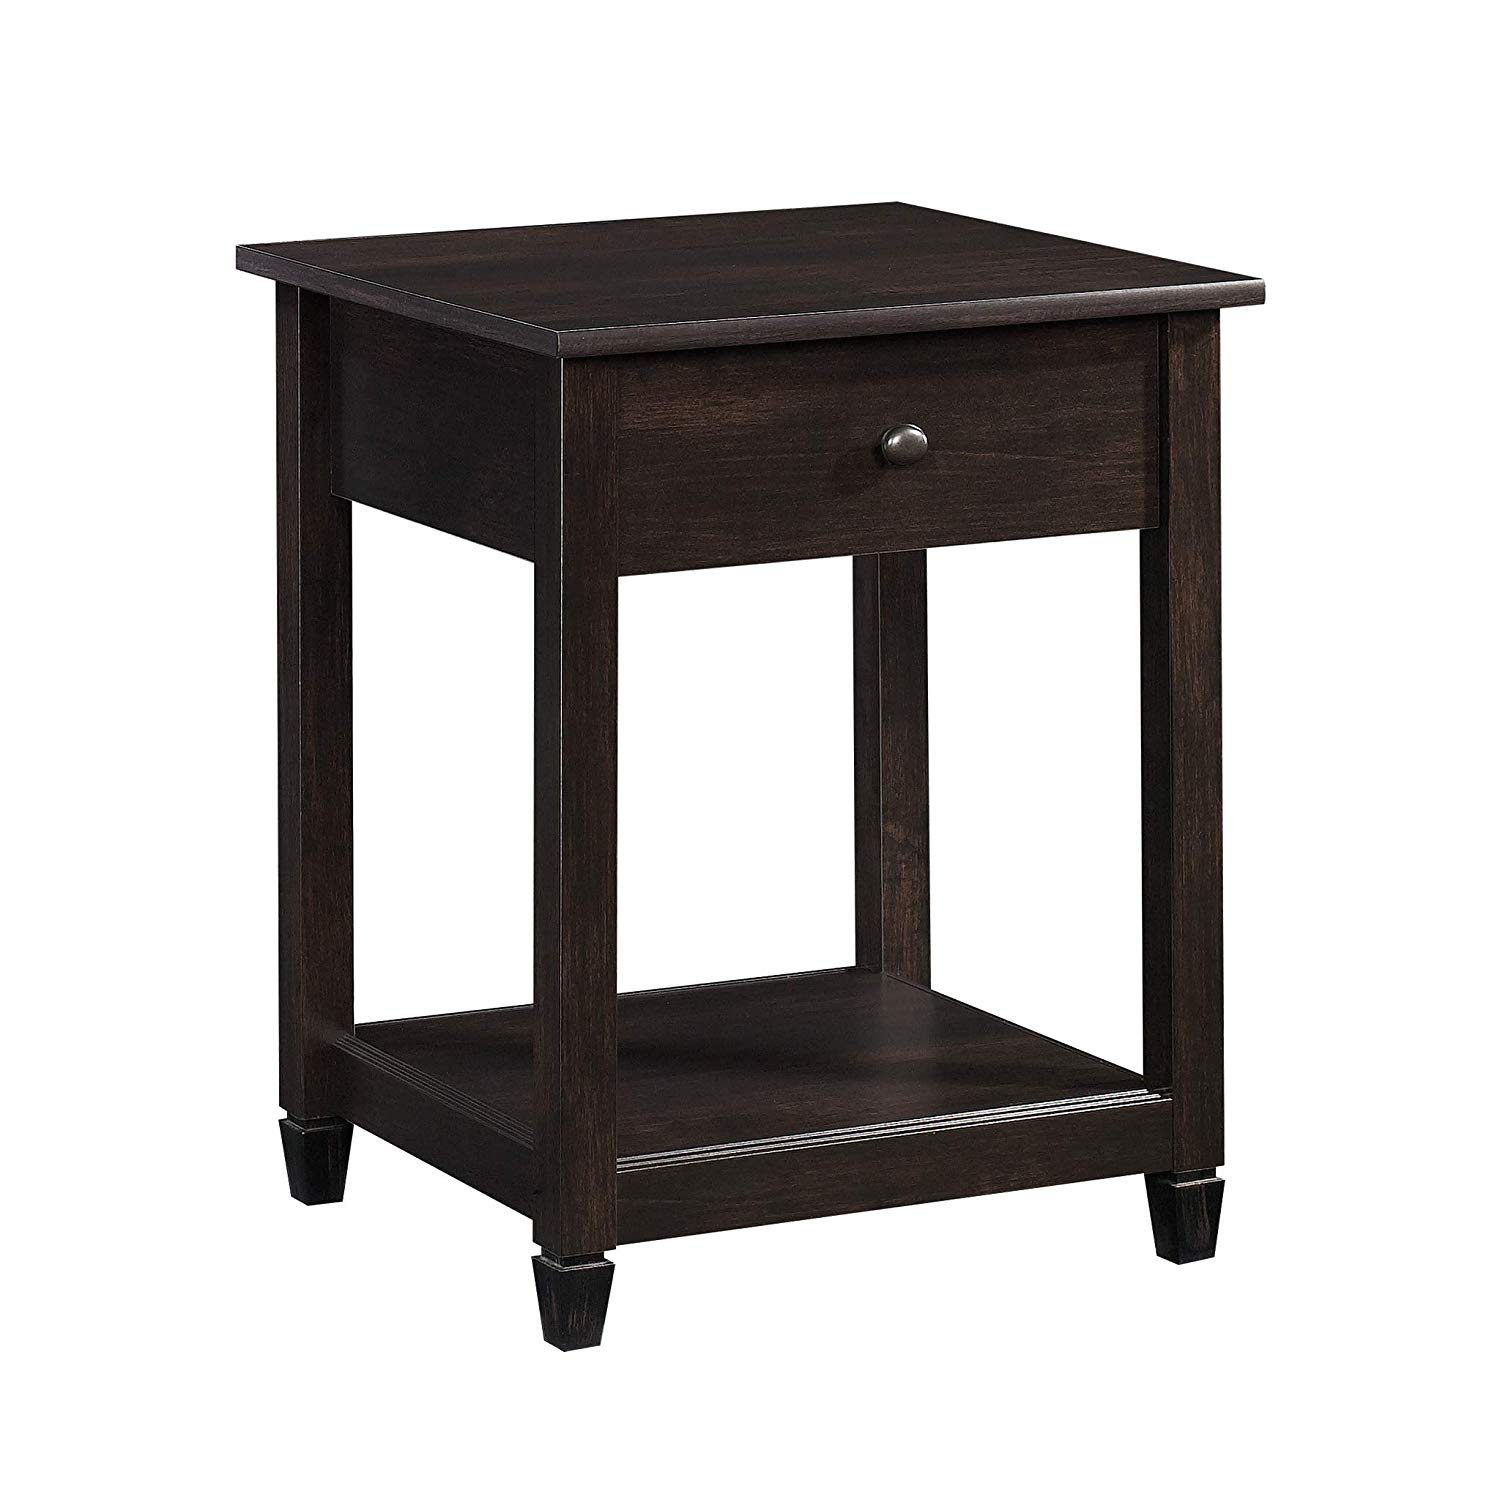 sauder edge water night stand storage accent table black room essentials estate finish kitchen dining antique chairs tiered metal asian lamps ceramic door knobs diy barndoor